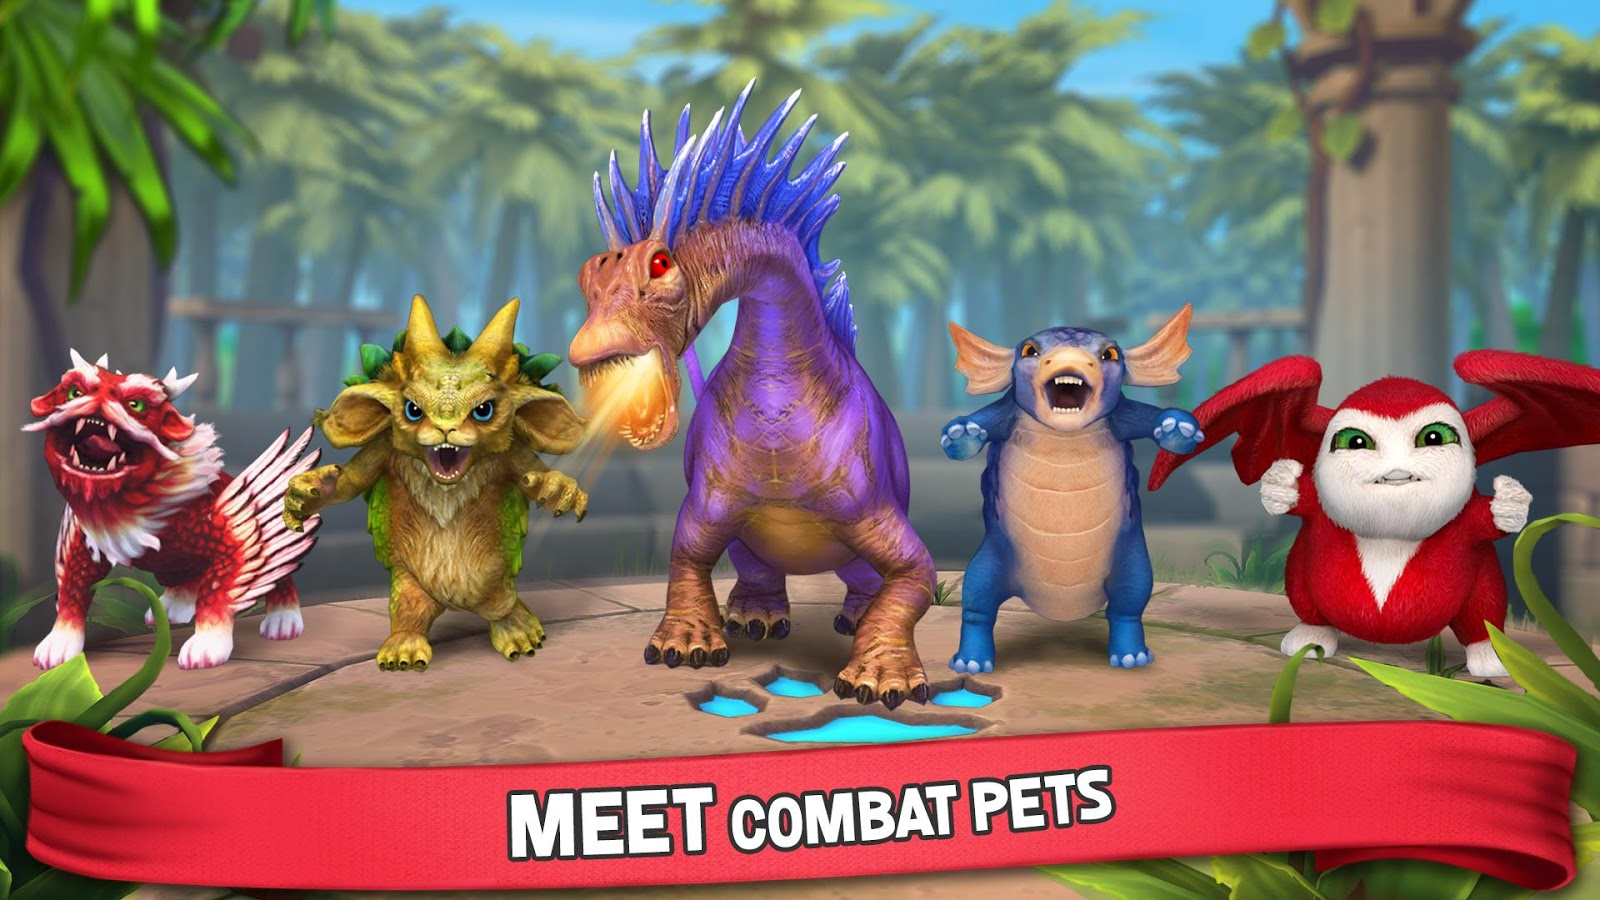 ComPet - Epic Beast Battles, PvP Pets Fight Arena- screenshot